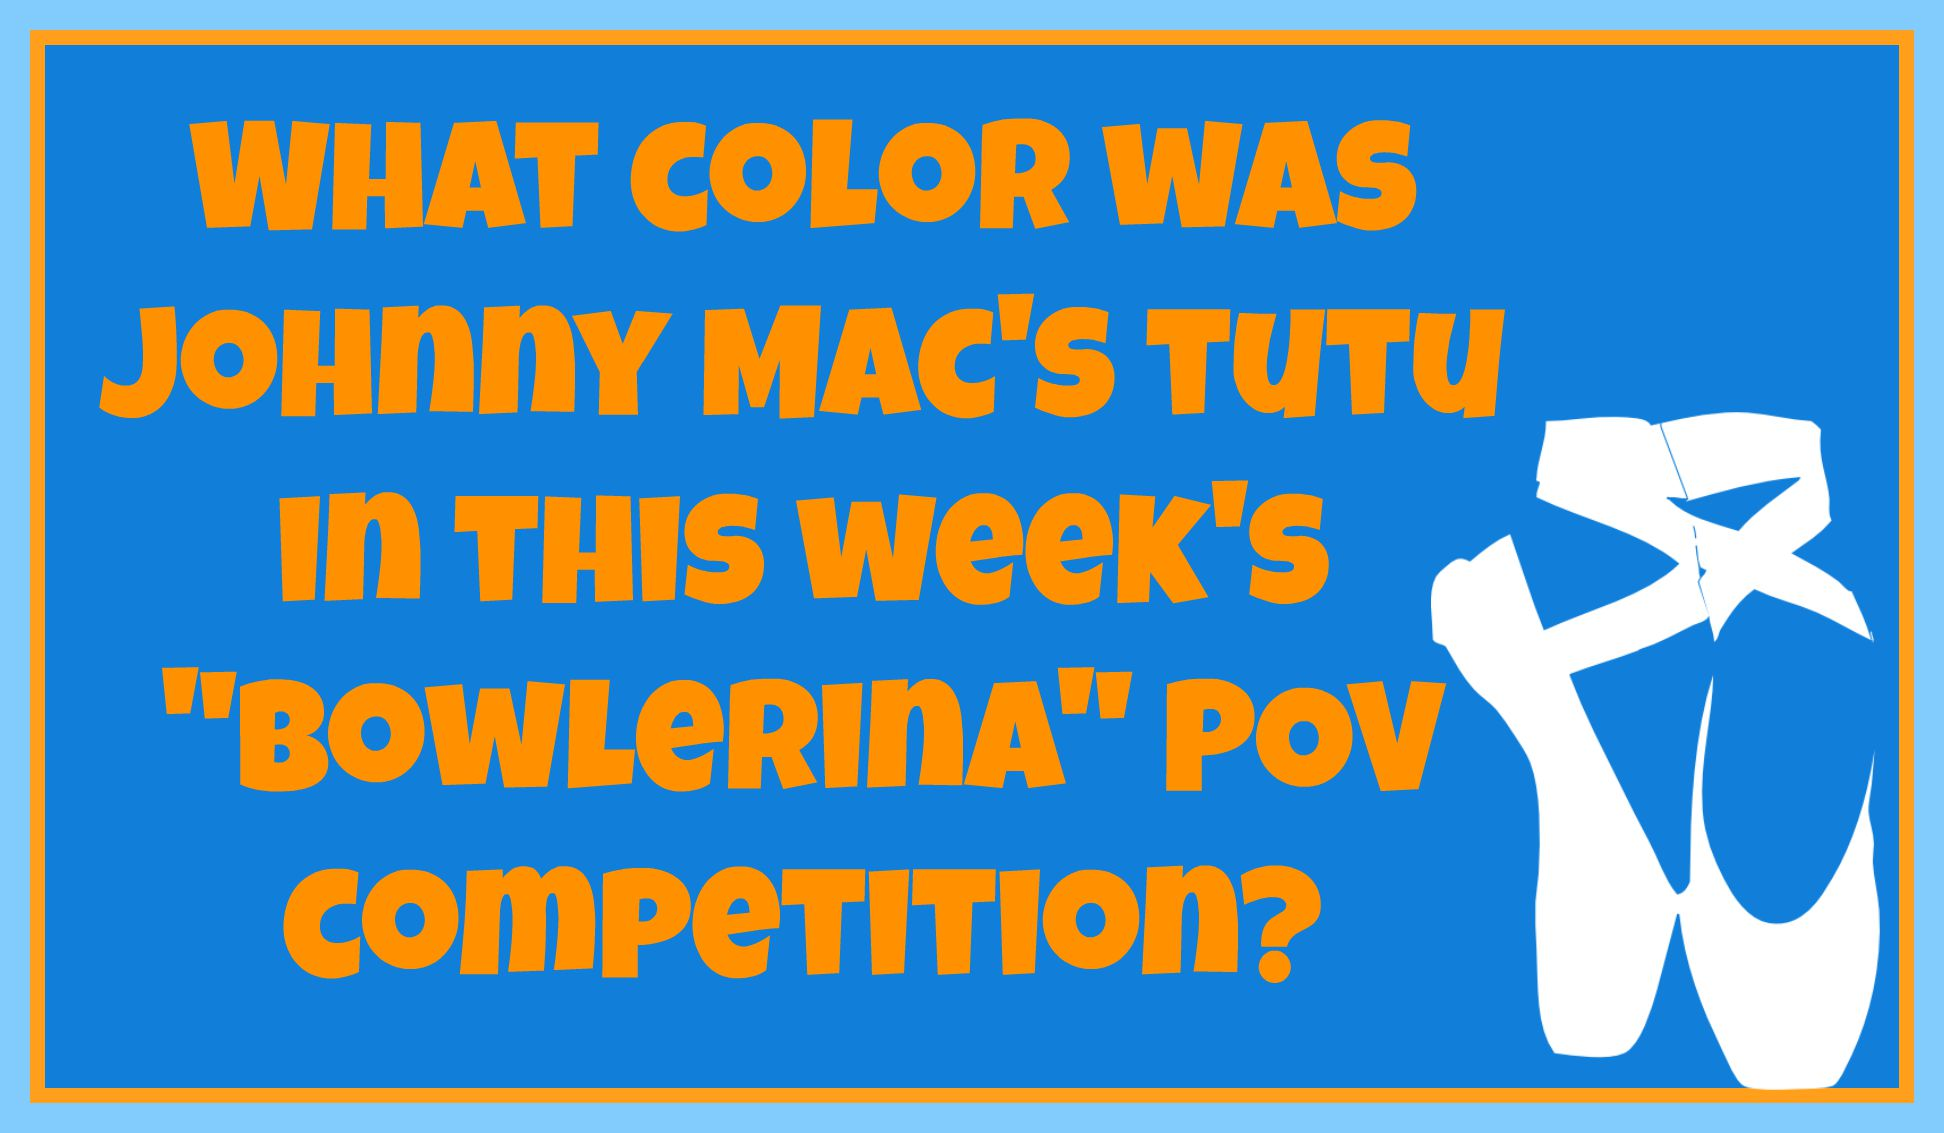 What color was Johnny Mac's tutu in this week's